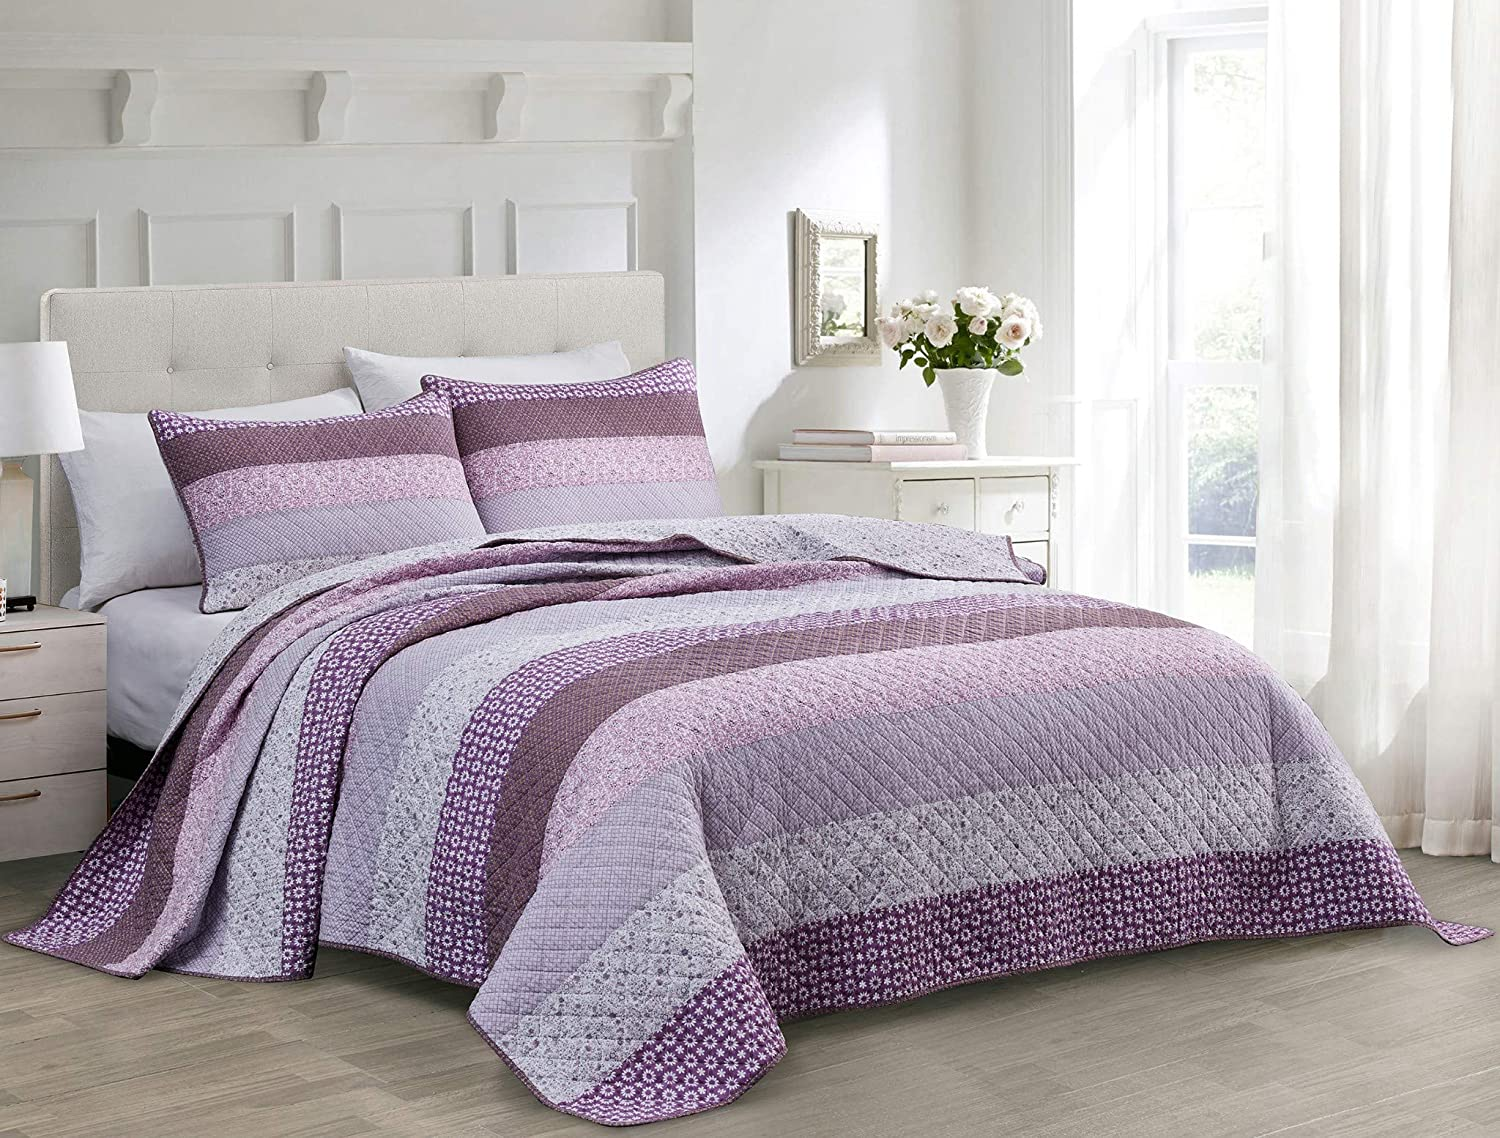 Coastal Paisley Coverlet Chezmoi Collection Galon 3-Piece Pre-Washed Cotton Patchwork Striped Quilt Set Lightweight Reversible Bedspread King Size